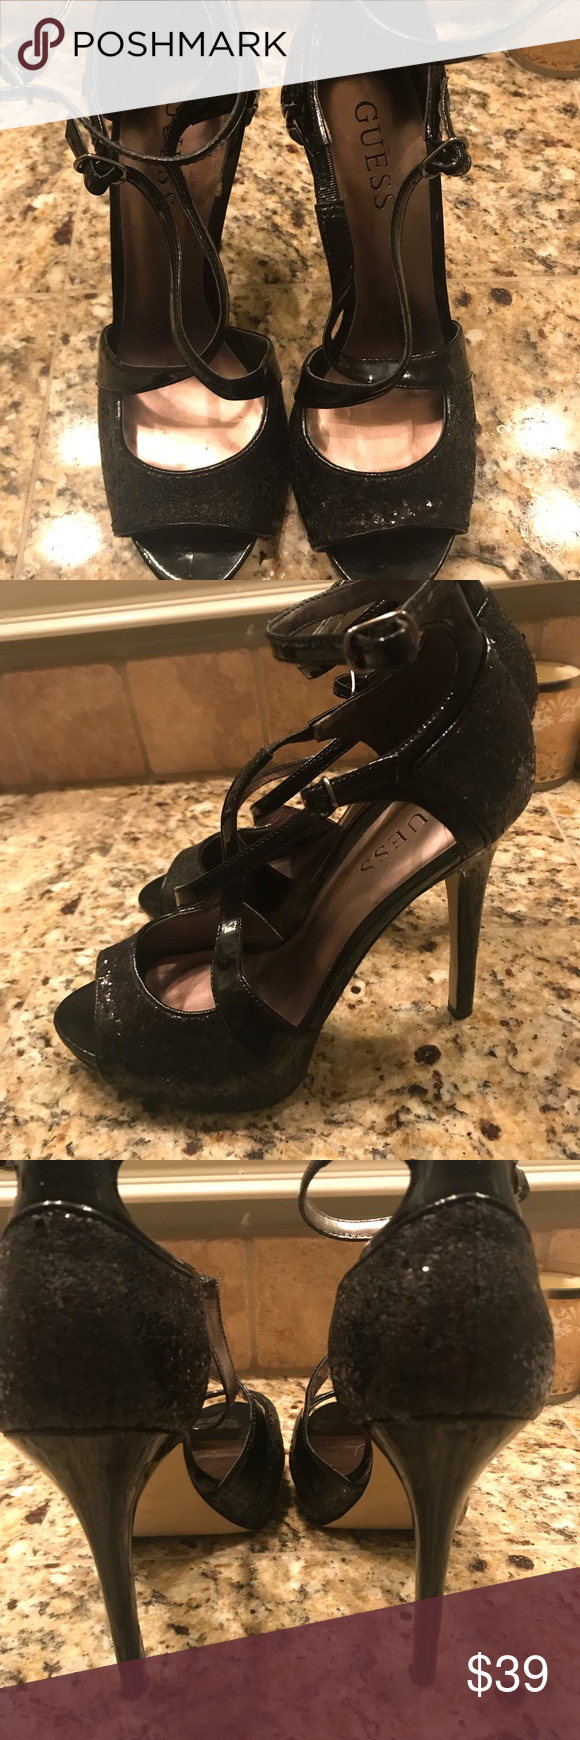 Guess Strappy Black Sequin Peep Toe